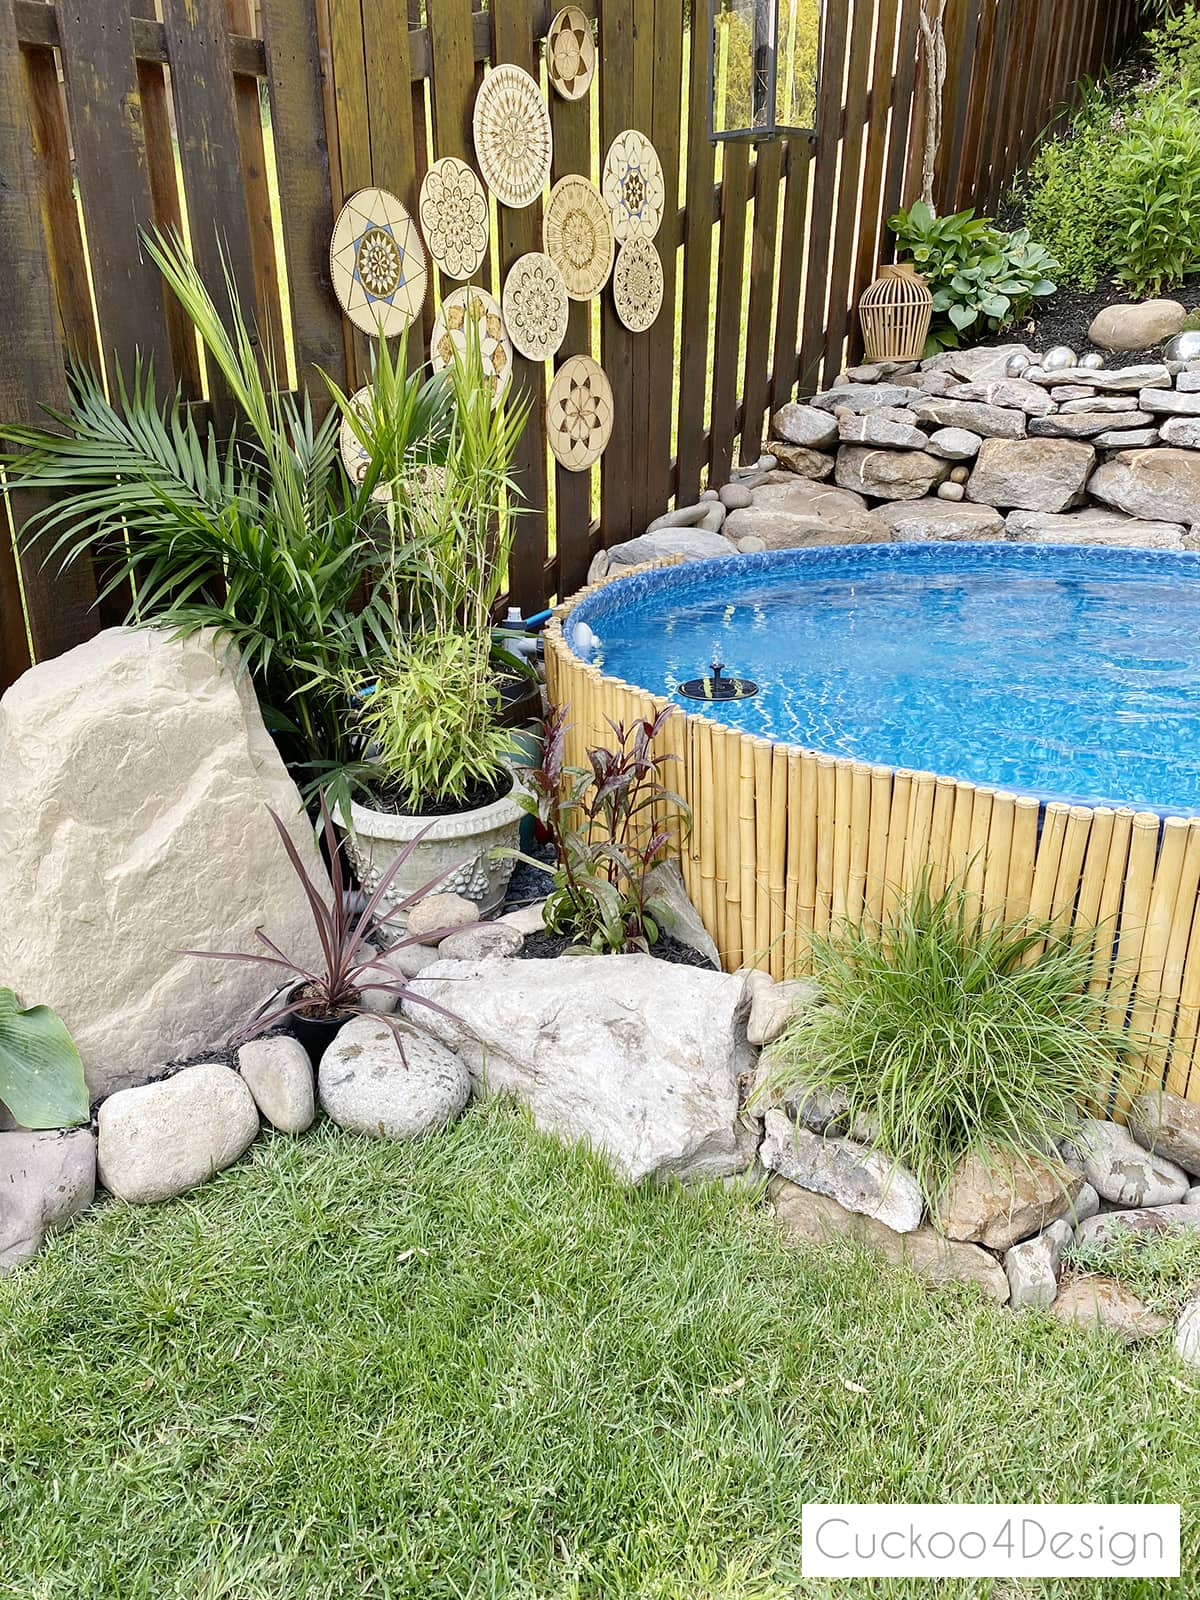 faux rock pool pump cover with hoses hidden by potted plants